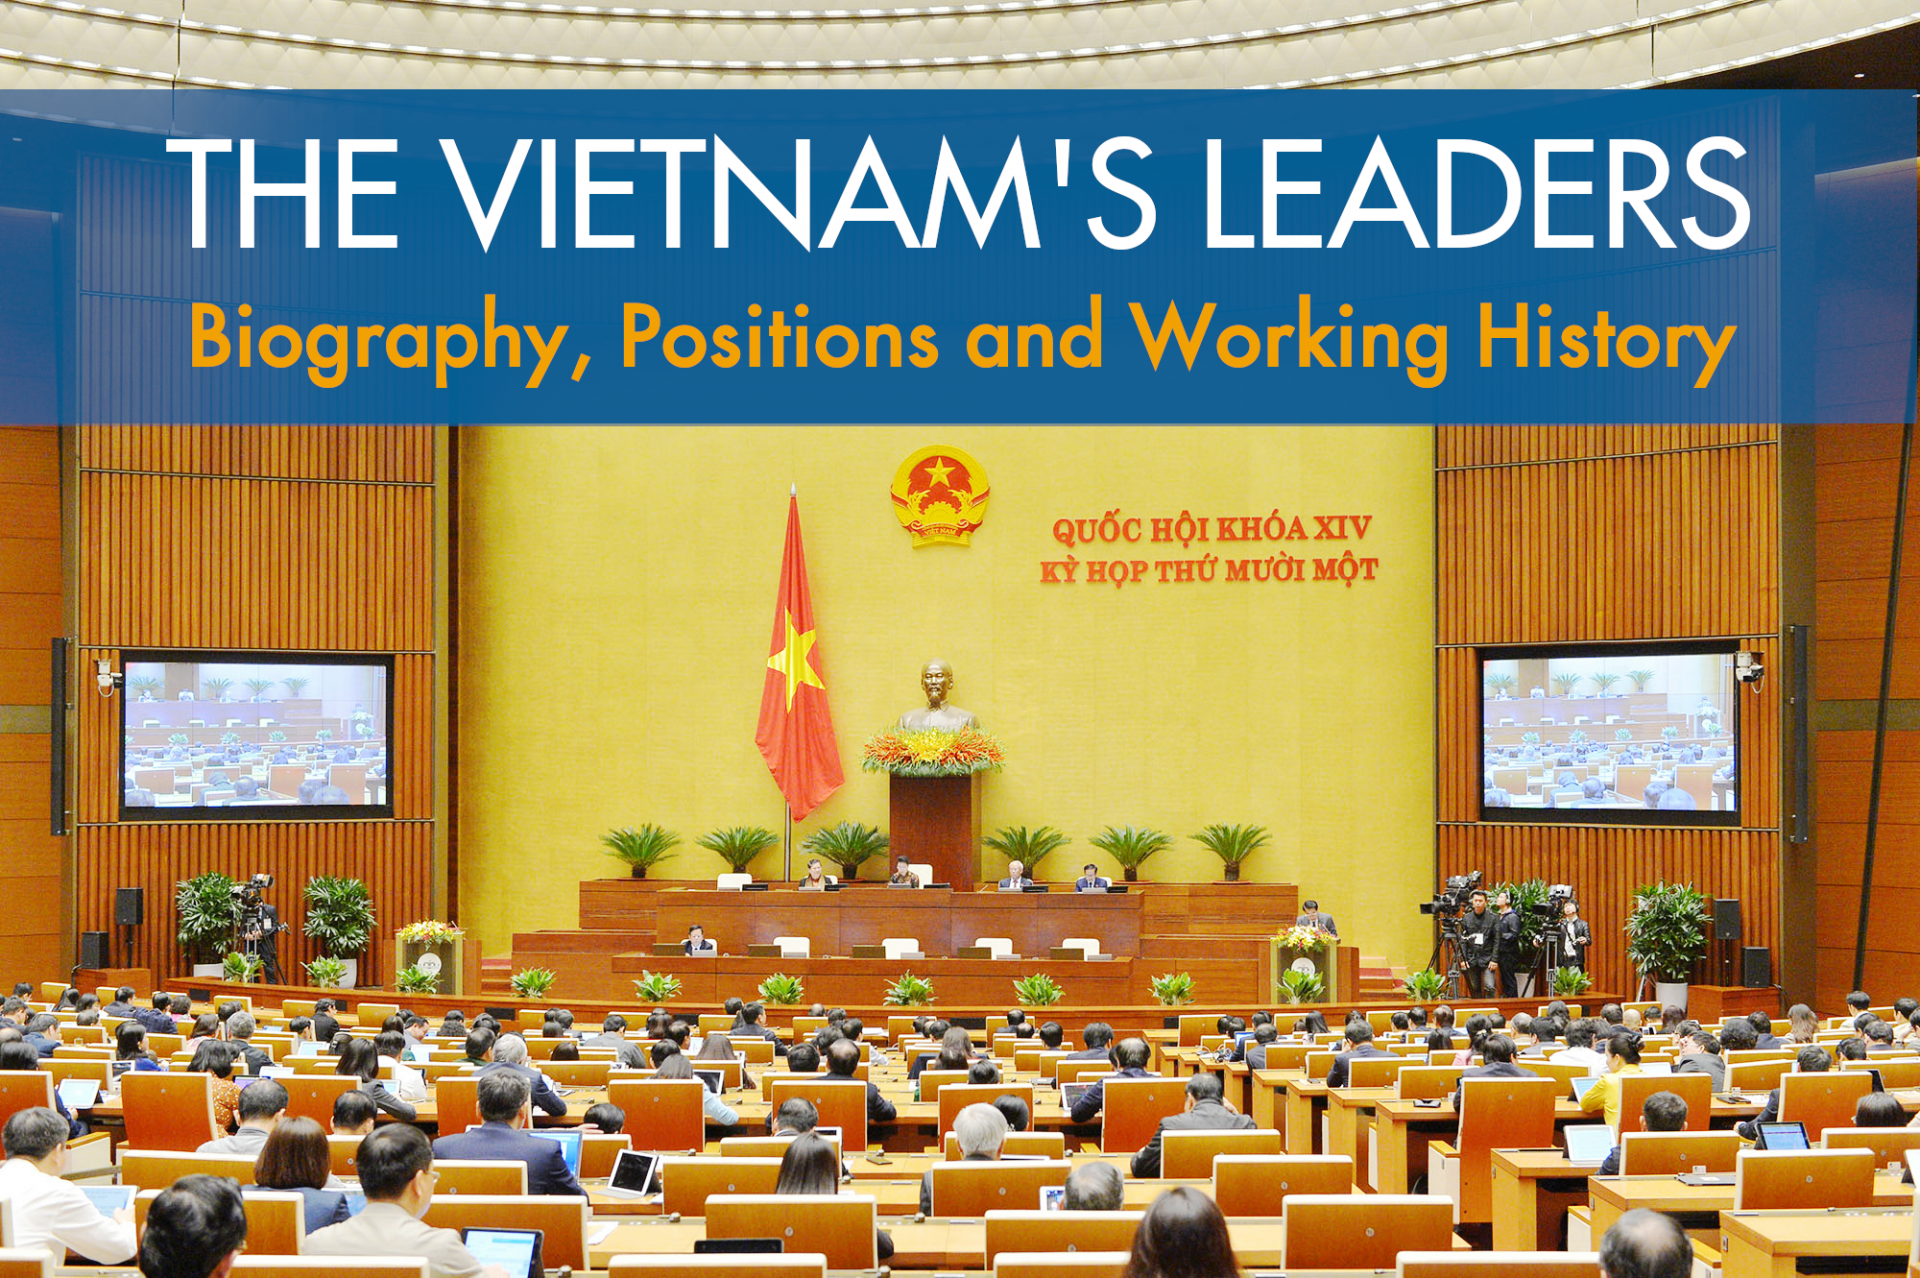 vietnams leaders biography leadership positions and working history